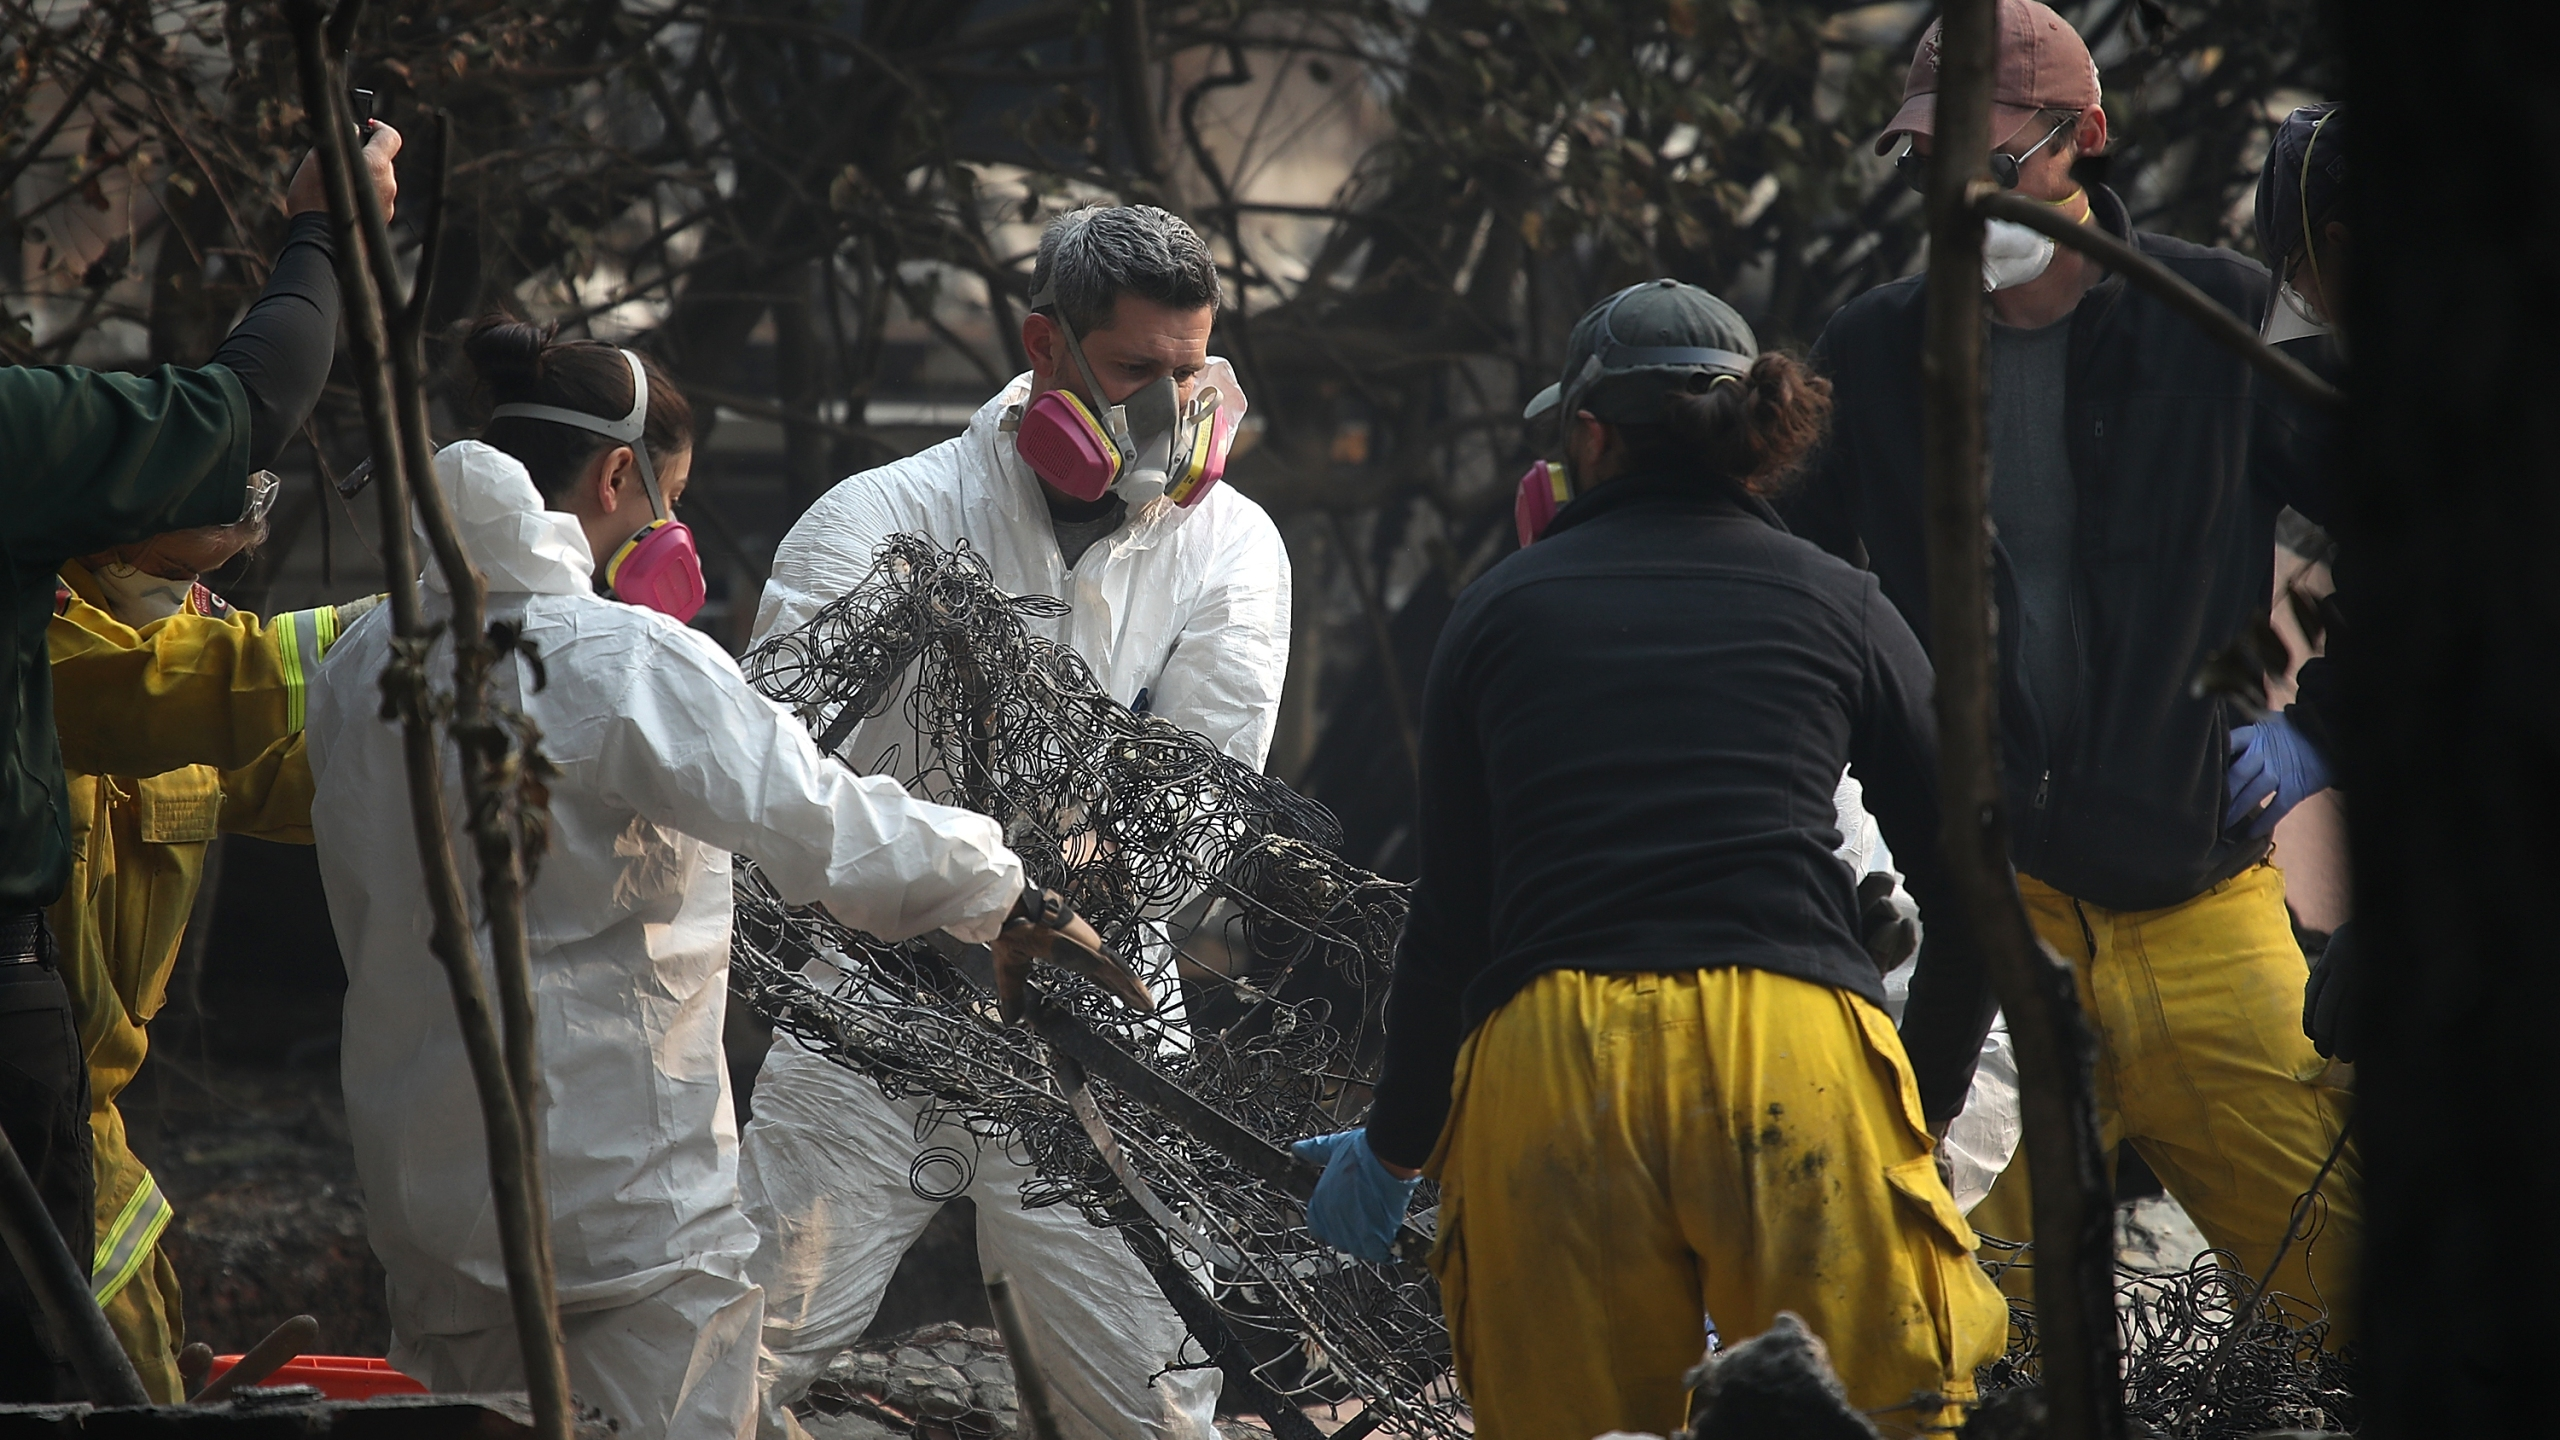 Rescue workers shake a burned mattress as they search for bone fragments while collecting human remains from a home destroyed by the Camp Fire on Nov. 16, 2018 in Paradise, California. (Credit: Justin Sullivan/Getty Images)